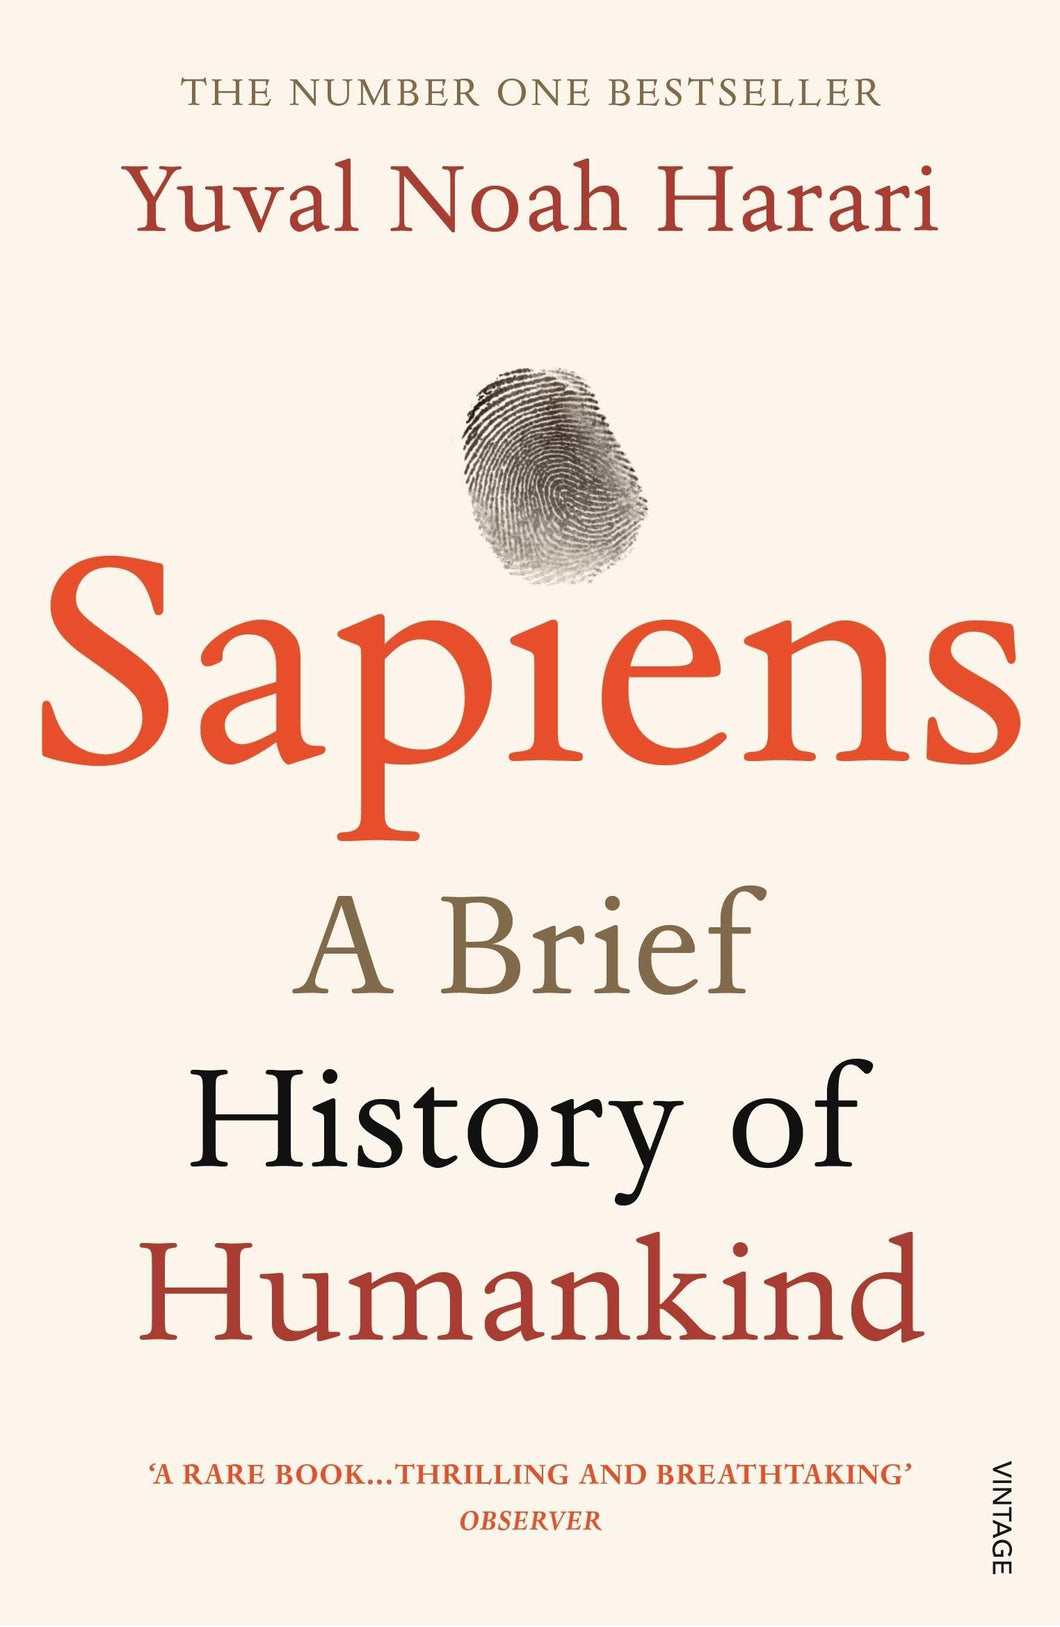 Sapiens: A Brief History of Humankind (Yuval Harari) - SalesGrowth Store